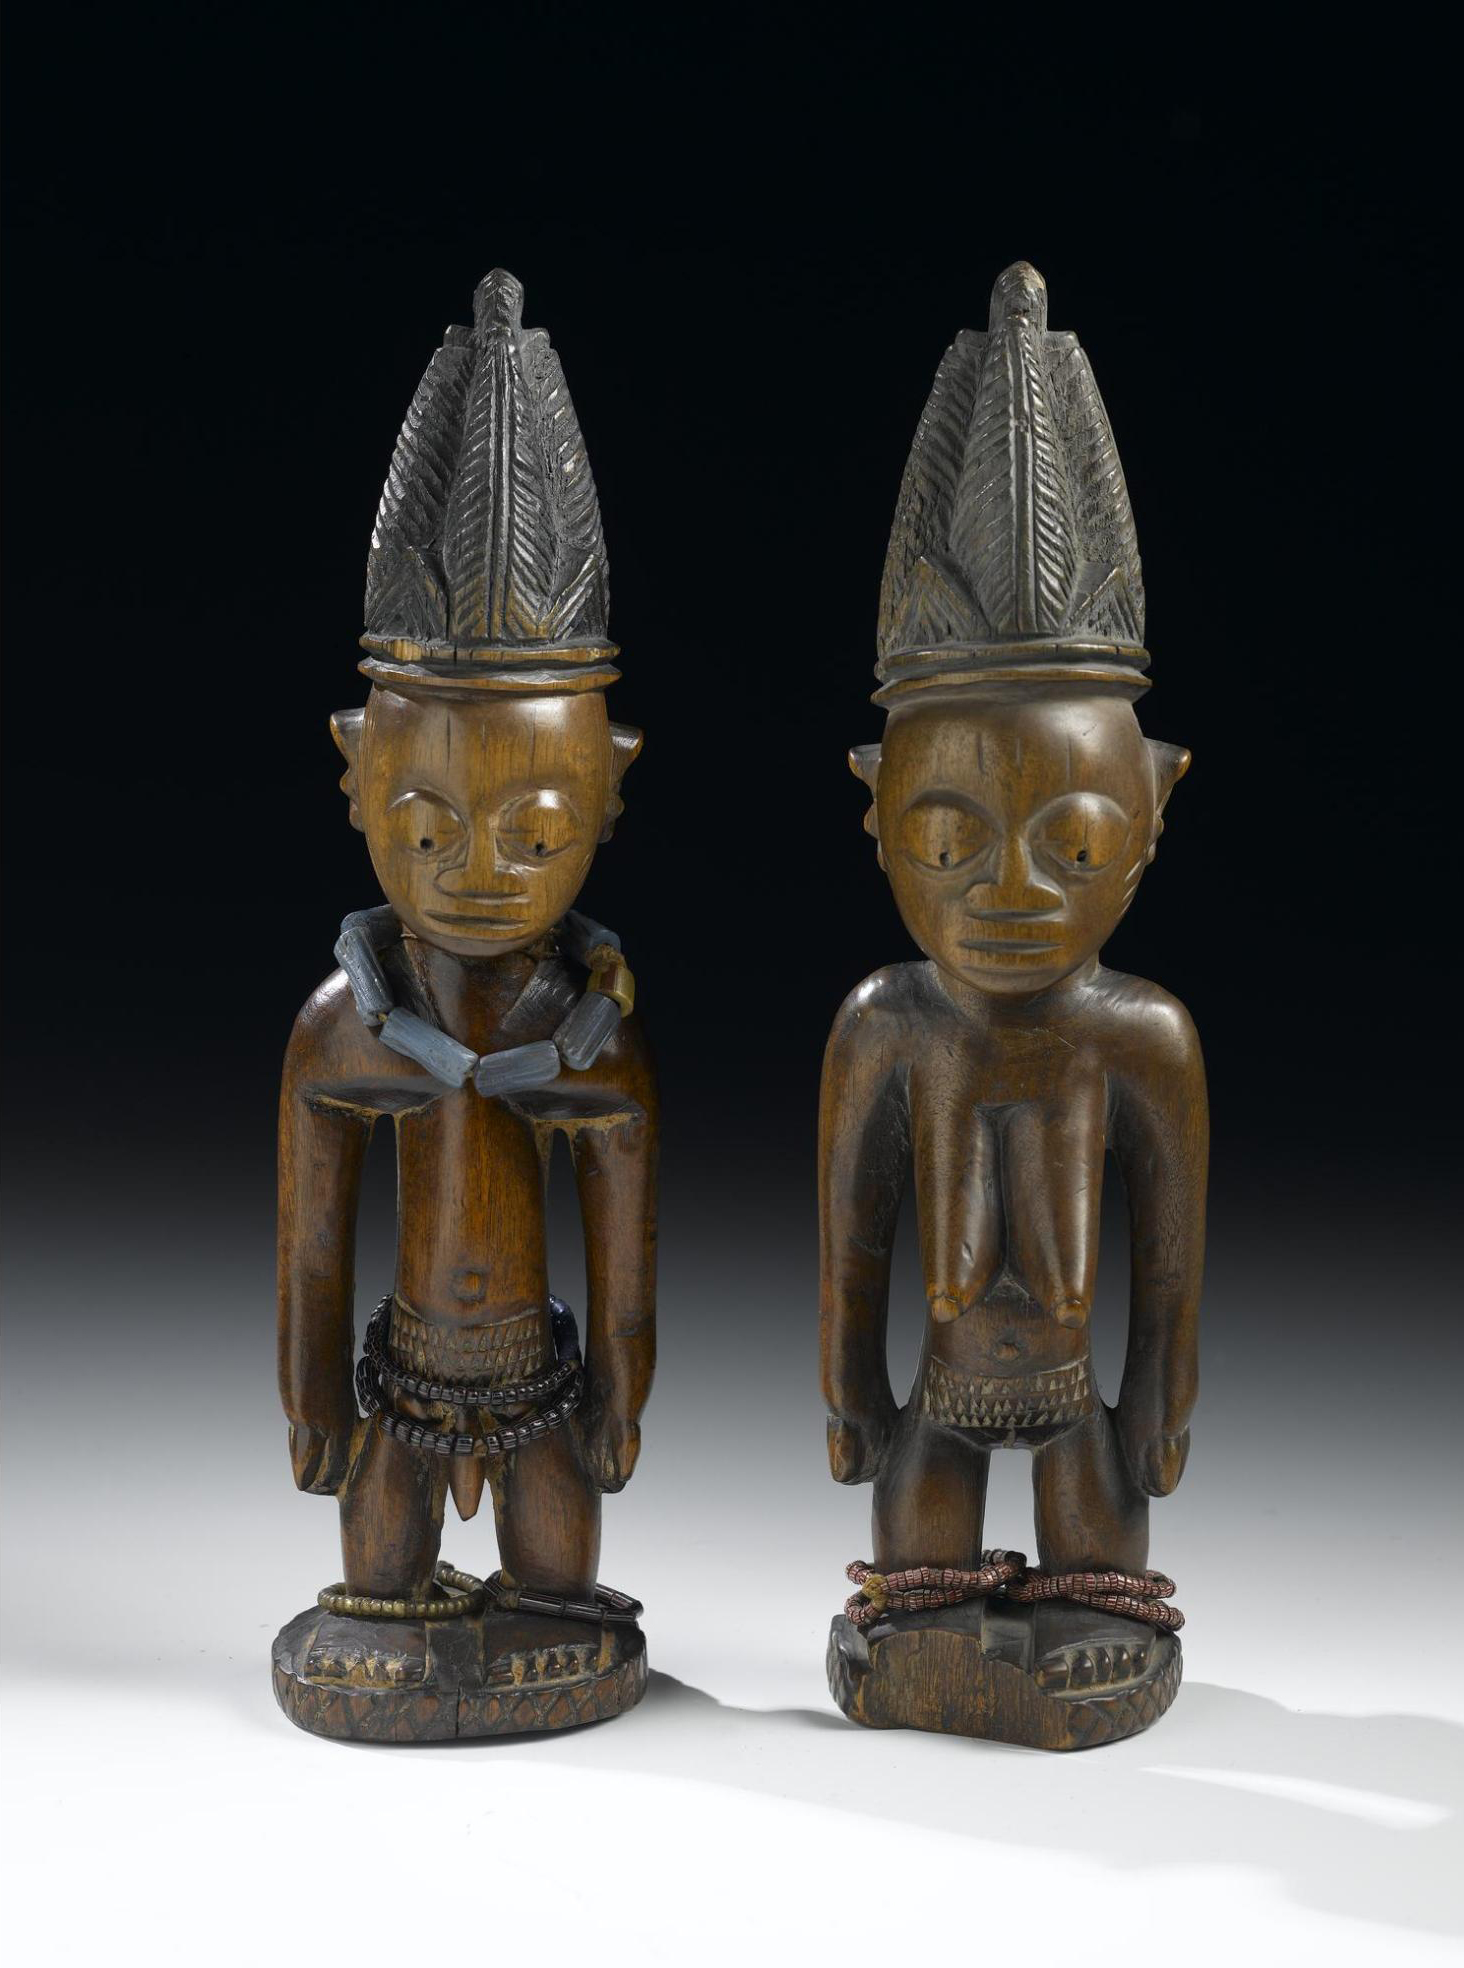 Late 19th-early 20th century male and female ere ibeji figures made from carved and painted wood, wearing high headdresses and strings of beads. Made in Nigeria.